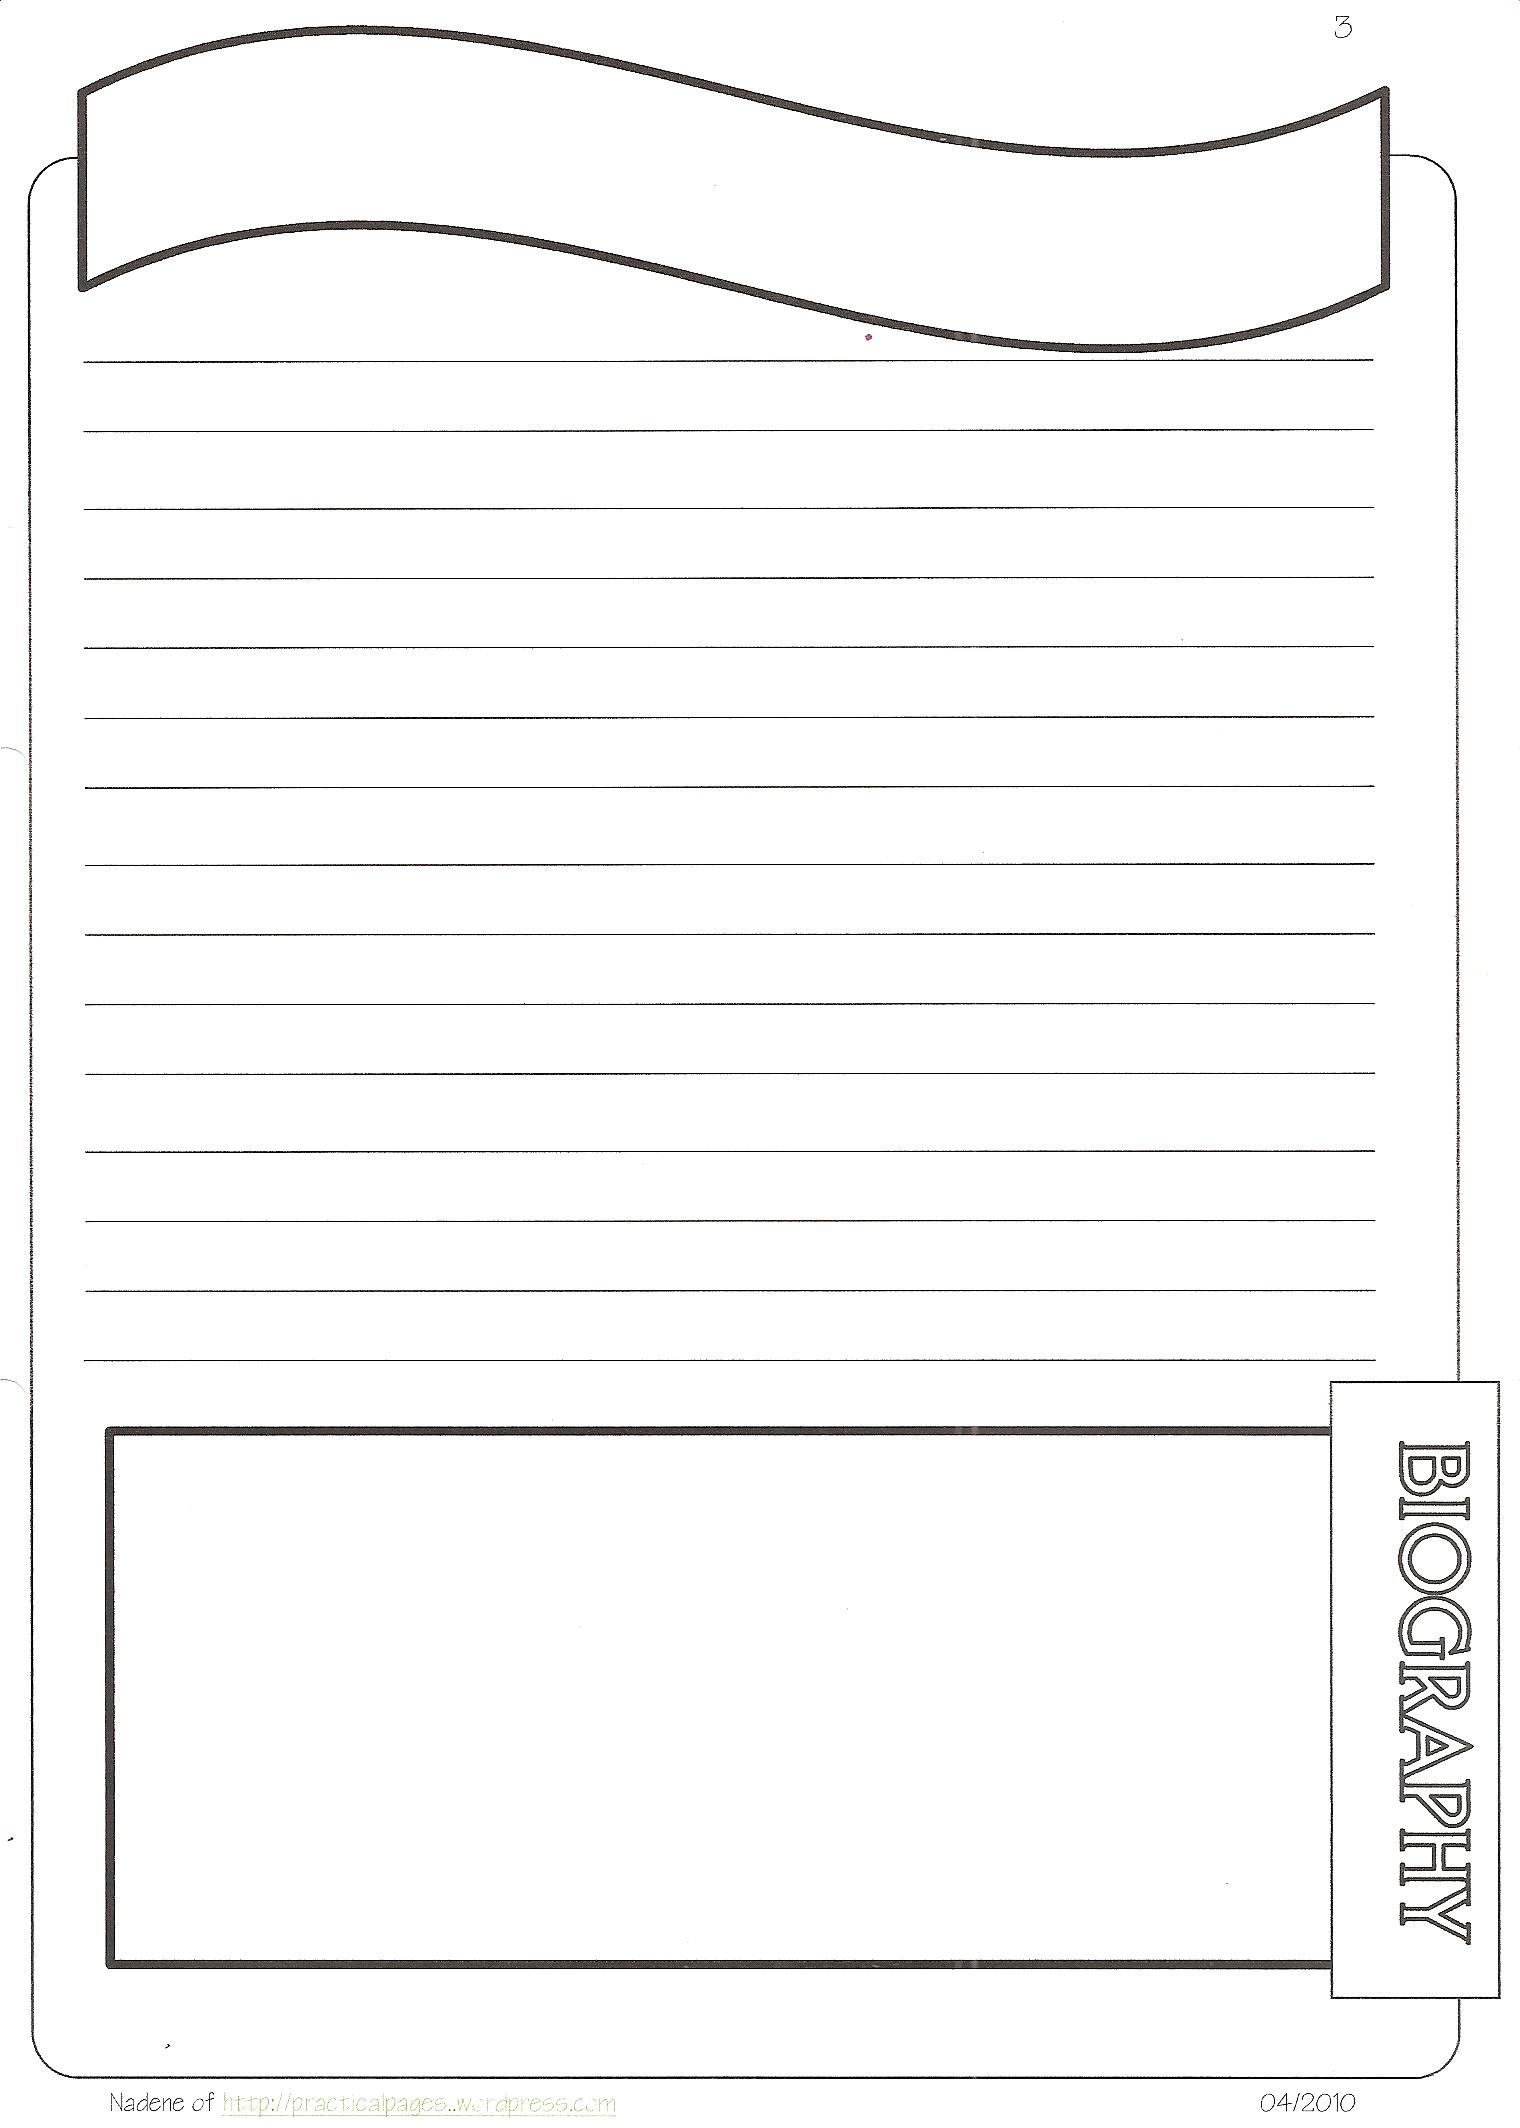 New Biography Notebook Page Templates gnRf8T5t